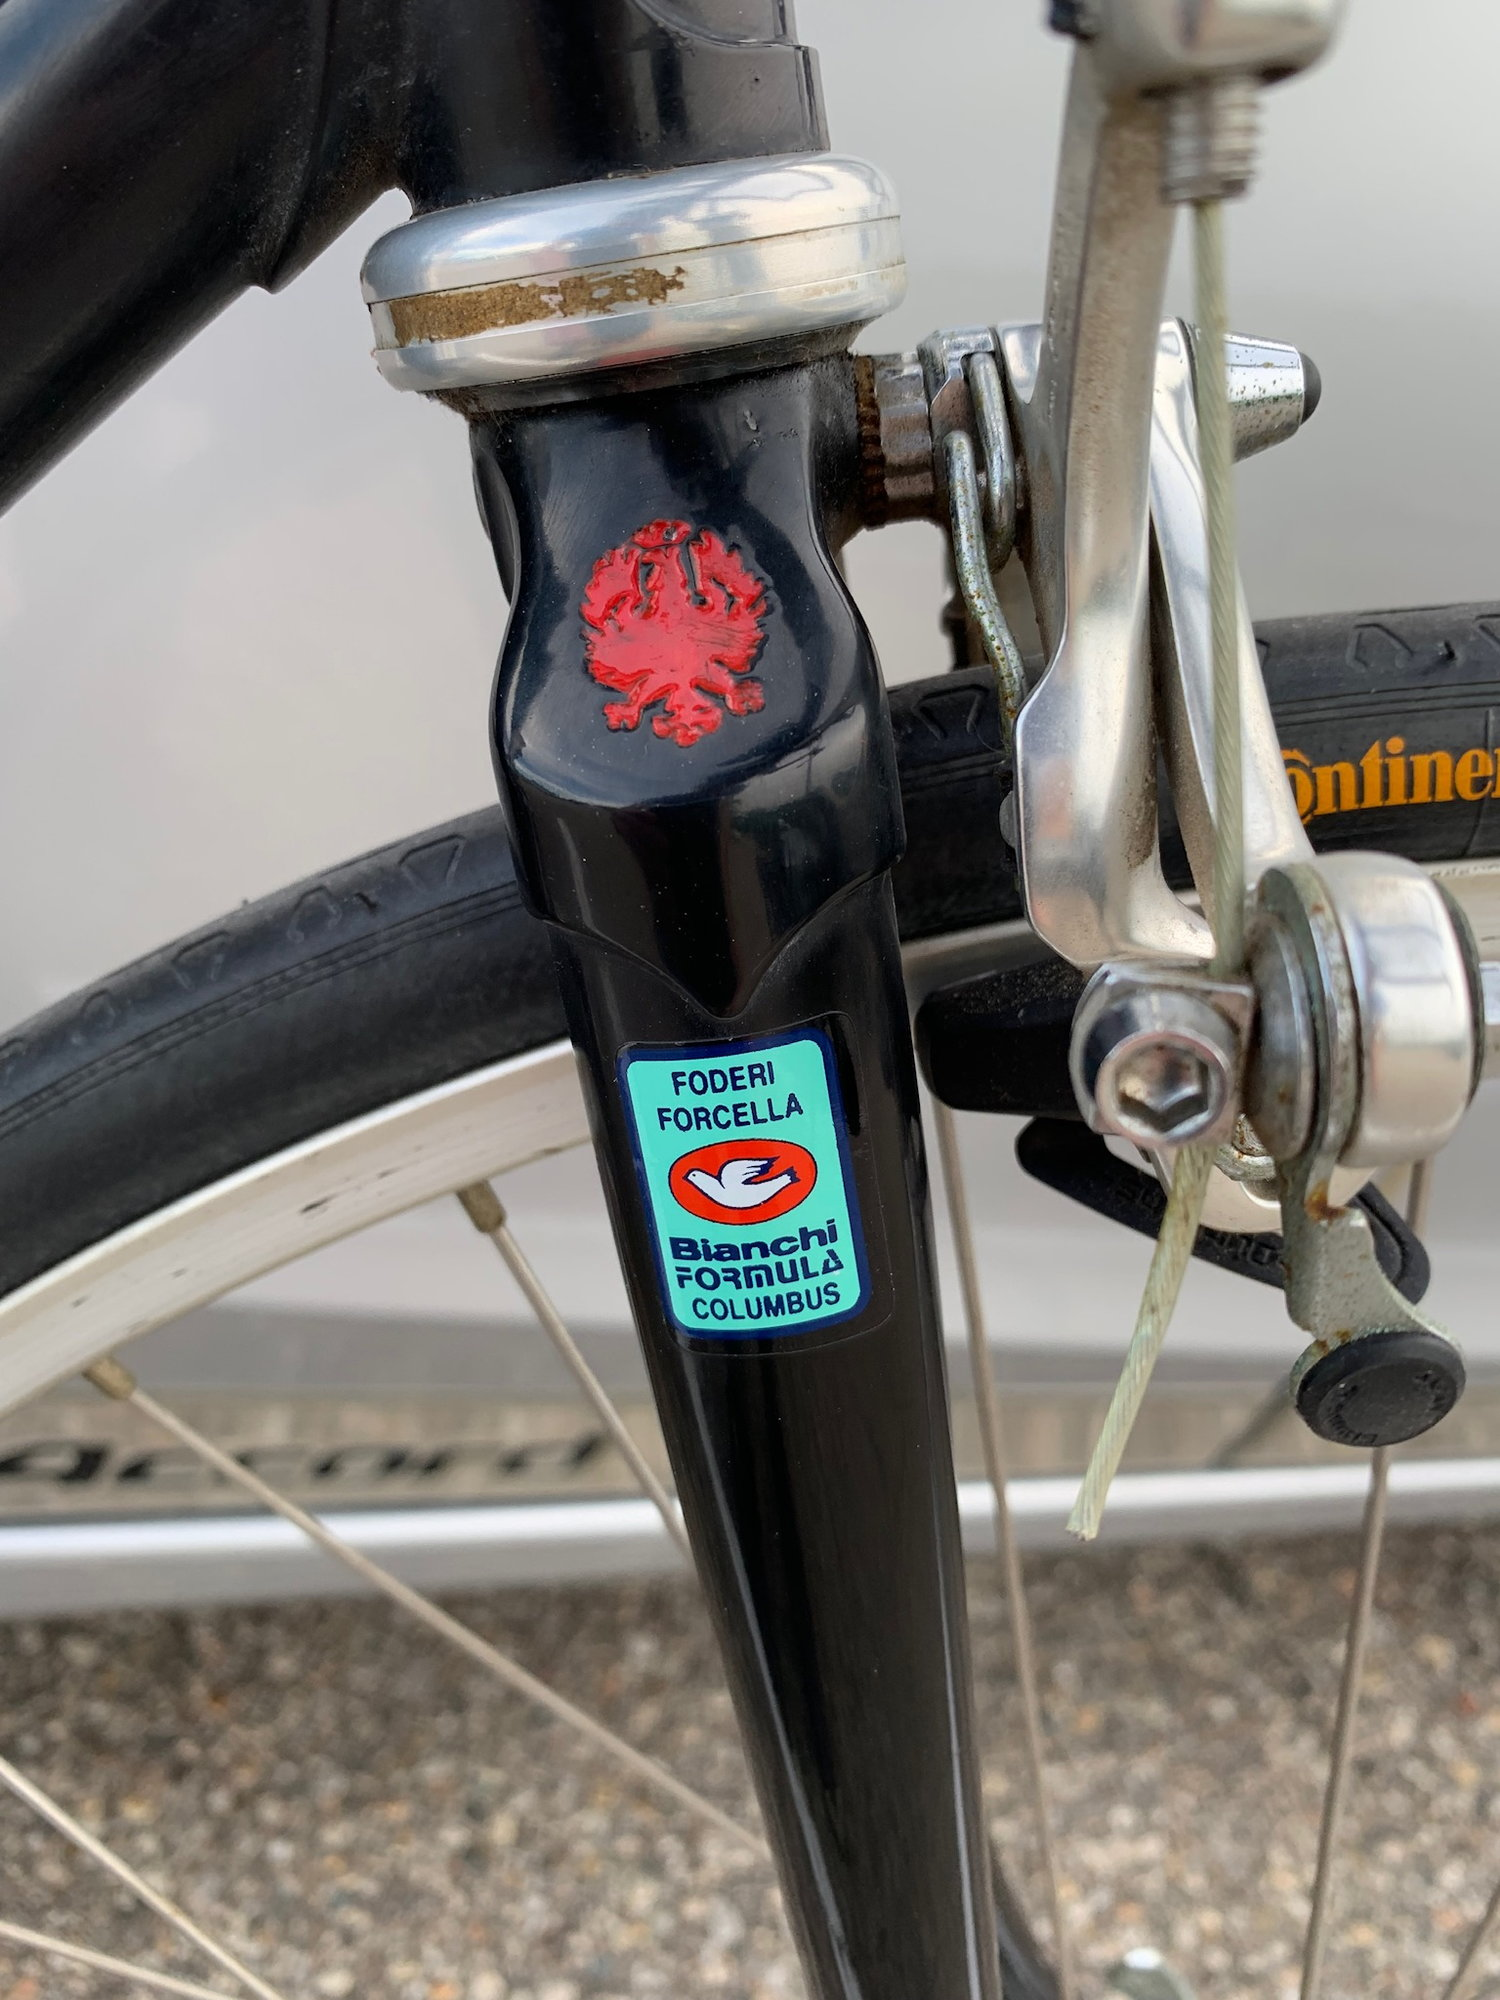 Happened To Be A Bianchi Limited In My Size It Was Asking 60 For The Bike And Deal I Couldnt Pass Up Really Not Sure About Keeping